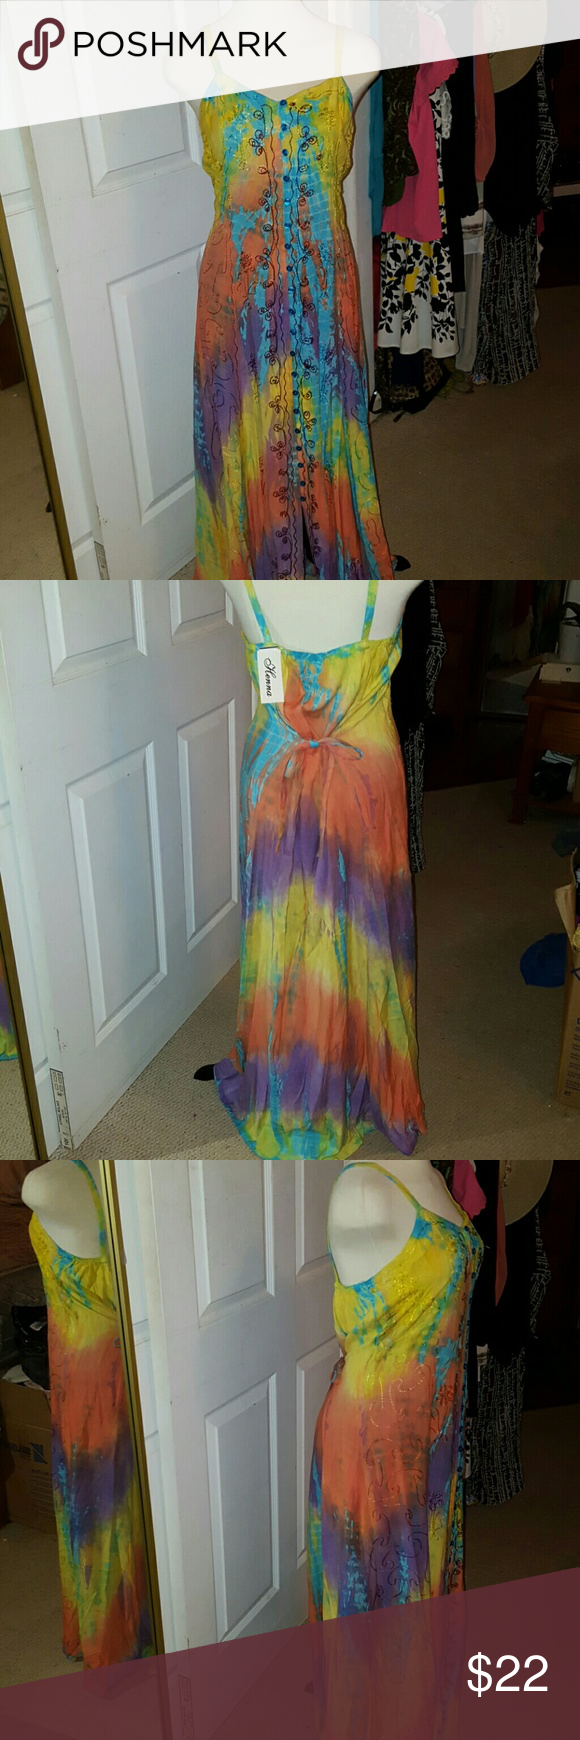 Henna Hippie Boho Indian Tie Dyed  Maxi All rayon, this colorful dress is embroidered  and buttons down the front. One size fits most but it's mostly xsmall-med. Unless you don't mind a little pulling in the back and tummy, large can work. Ties in back to adjust to your measurements. Henna  Dresses Maxi